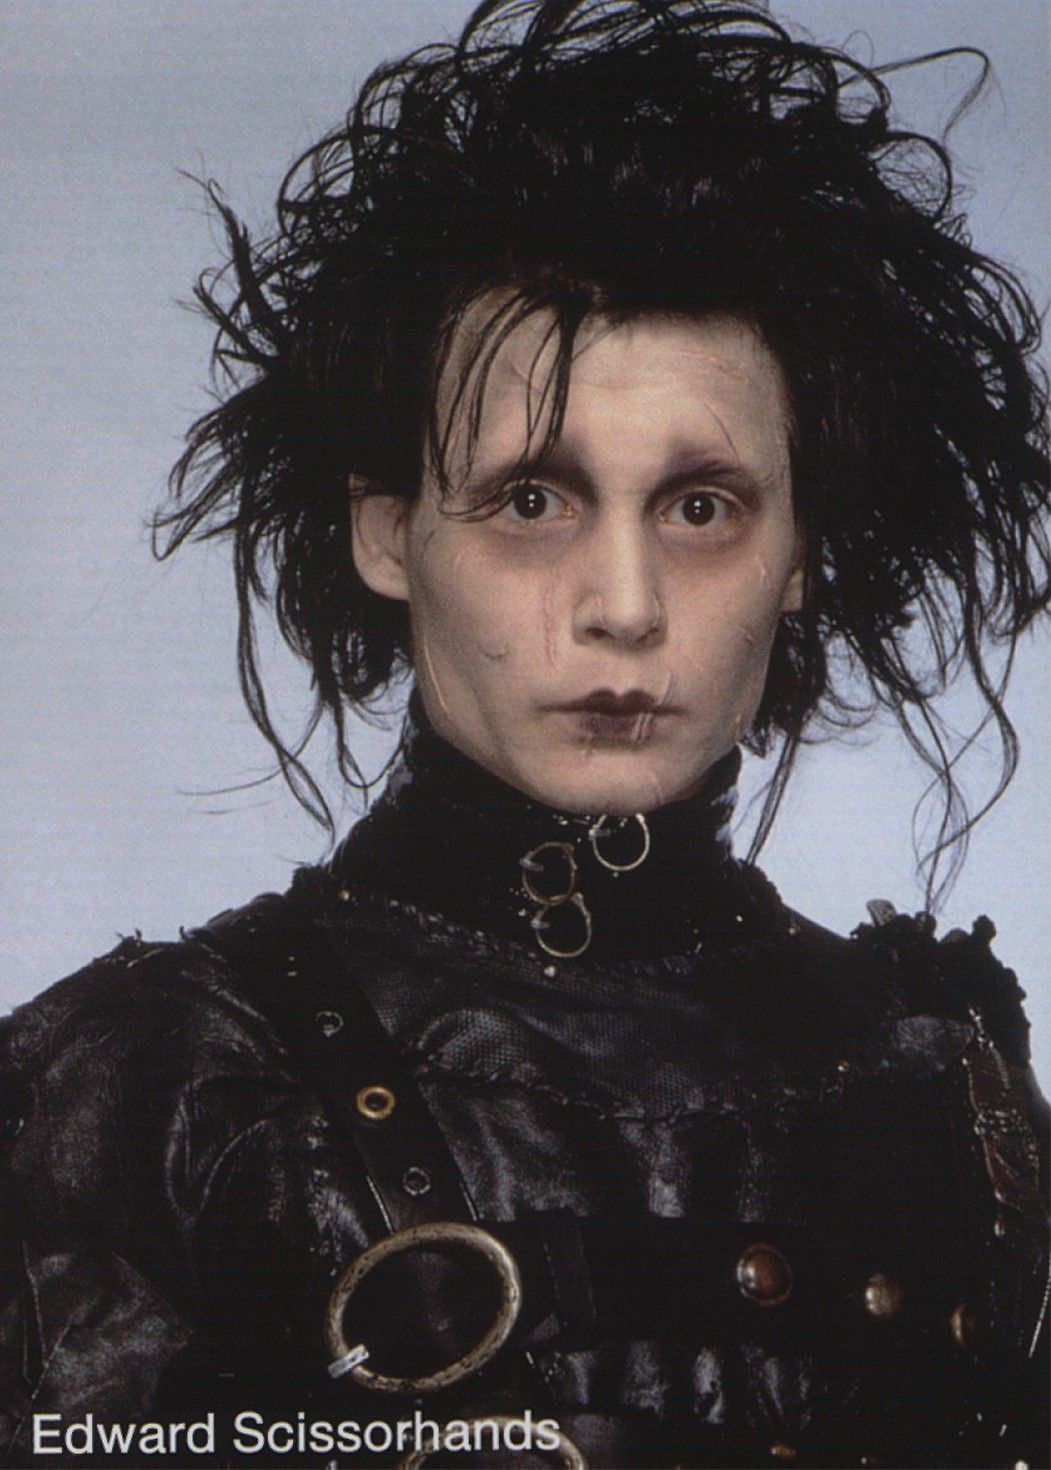 http://images.fanpop.com/images/image_uploads/edward-scissorhands-johnny-depp-180819_1051_1470.jpg